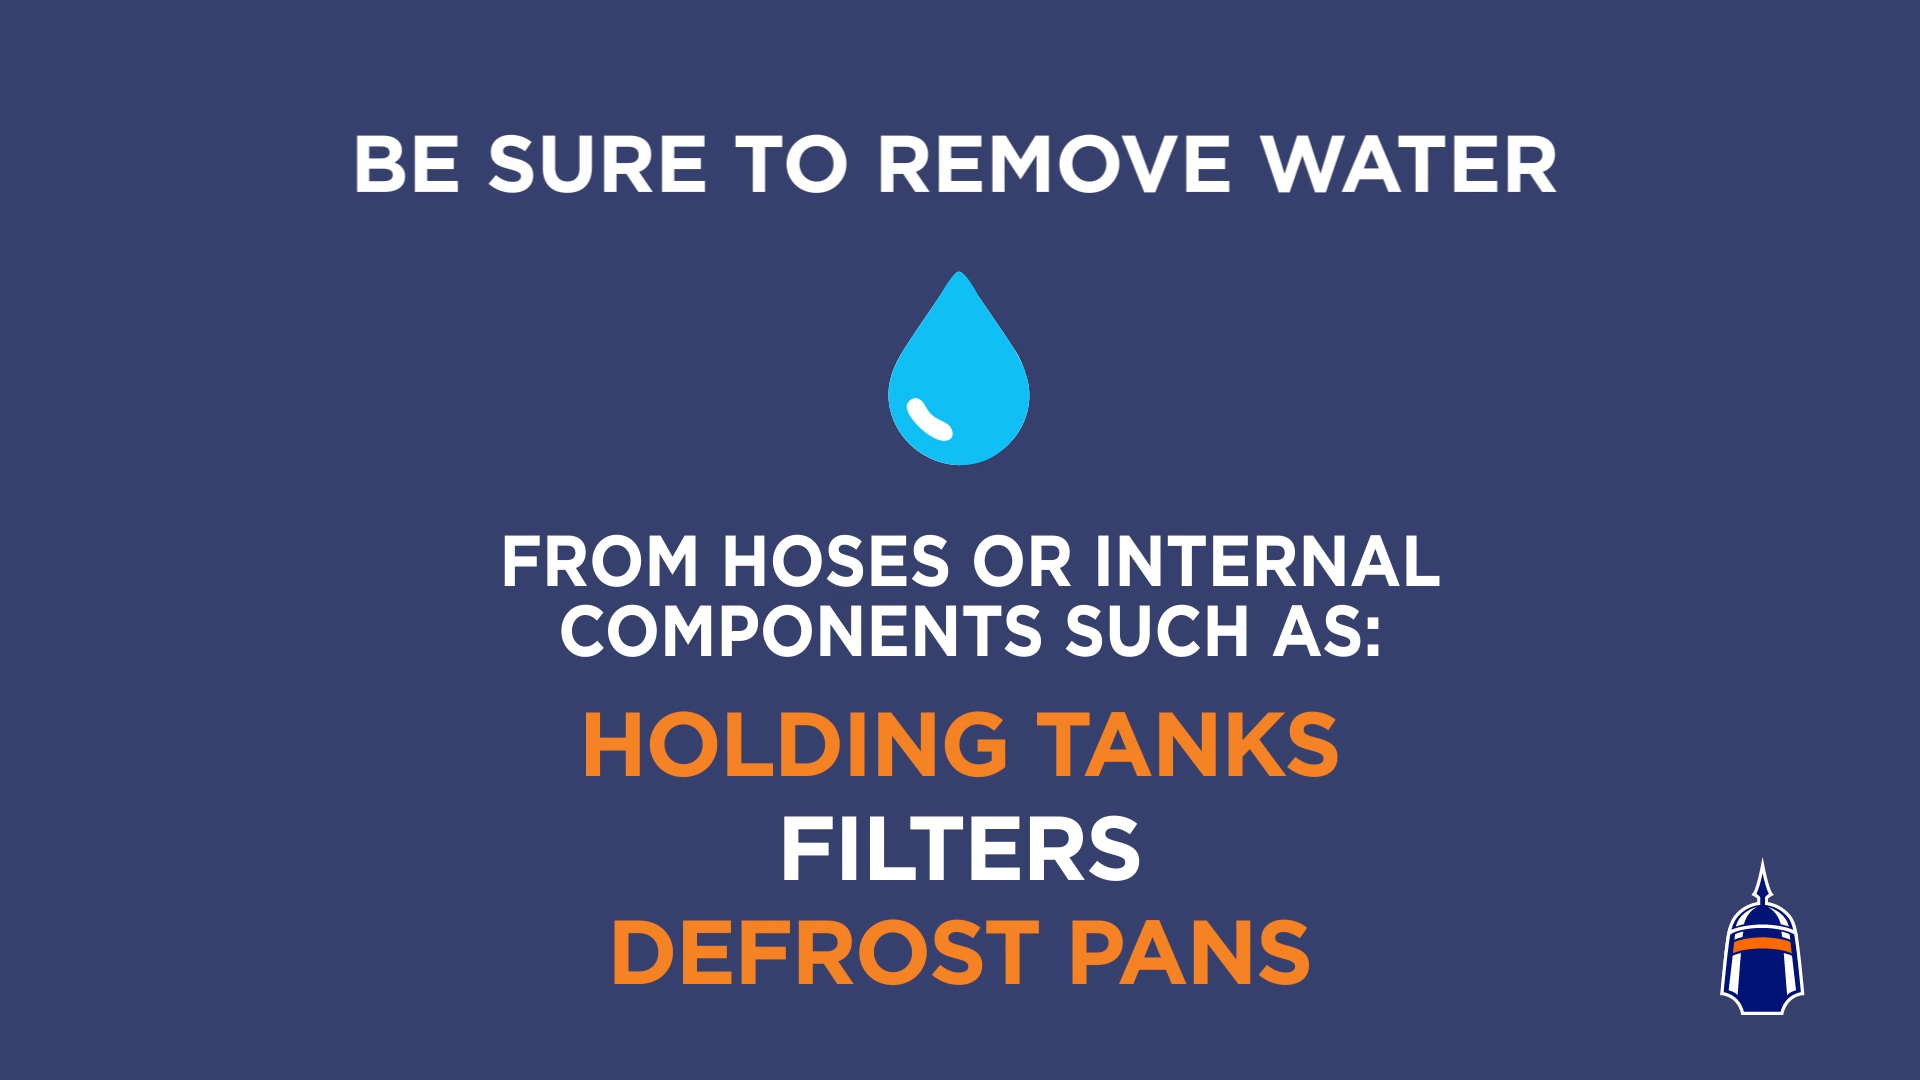 How to Store Major Appliances? Be sure to remove water from hoses or internal components such as: holding tanks, filters, and defrost pans.